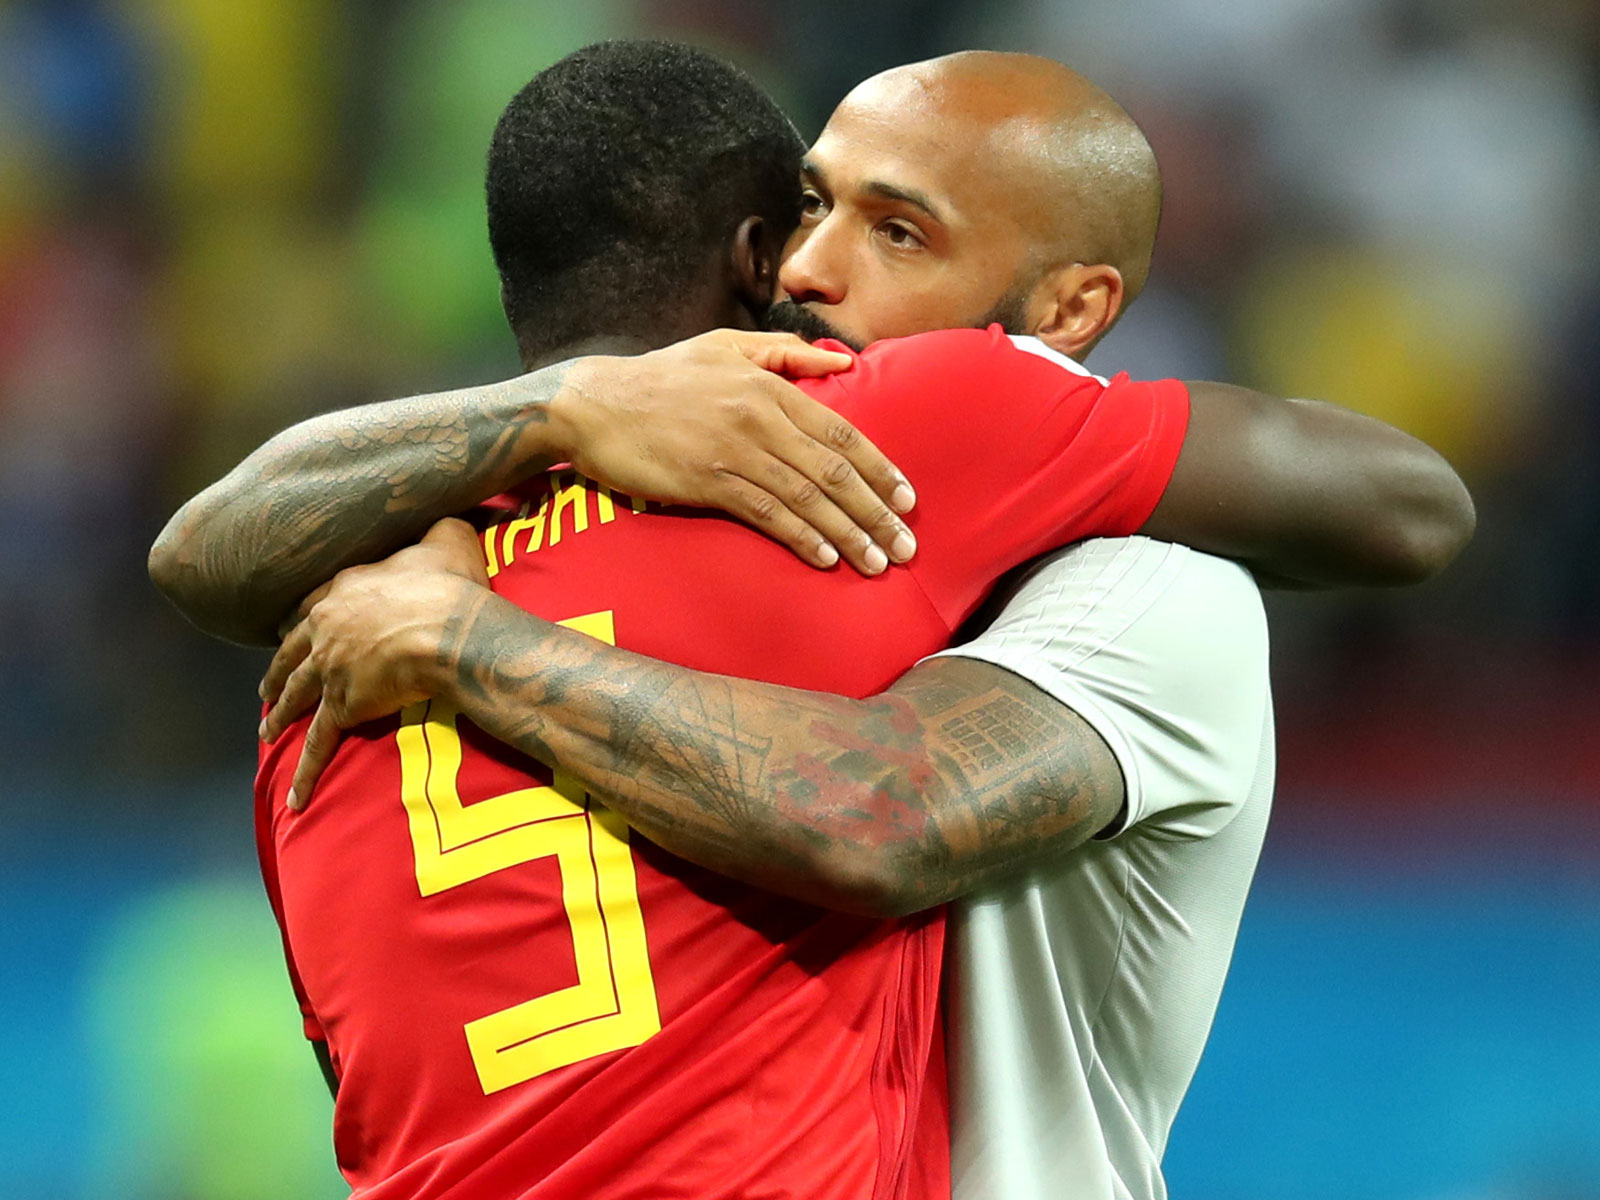 Thierry Henry hugs Romelu Lukaku after Belgium's World Cup quarterfinal win